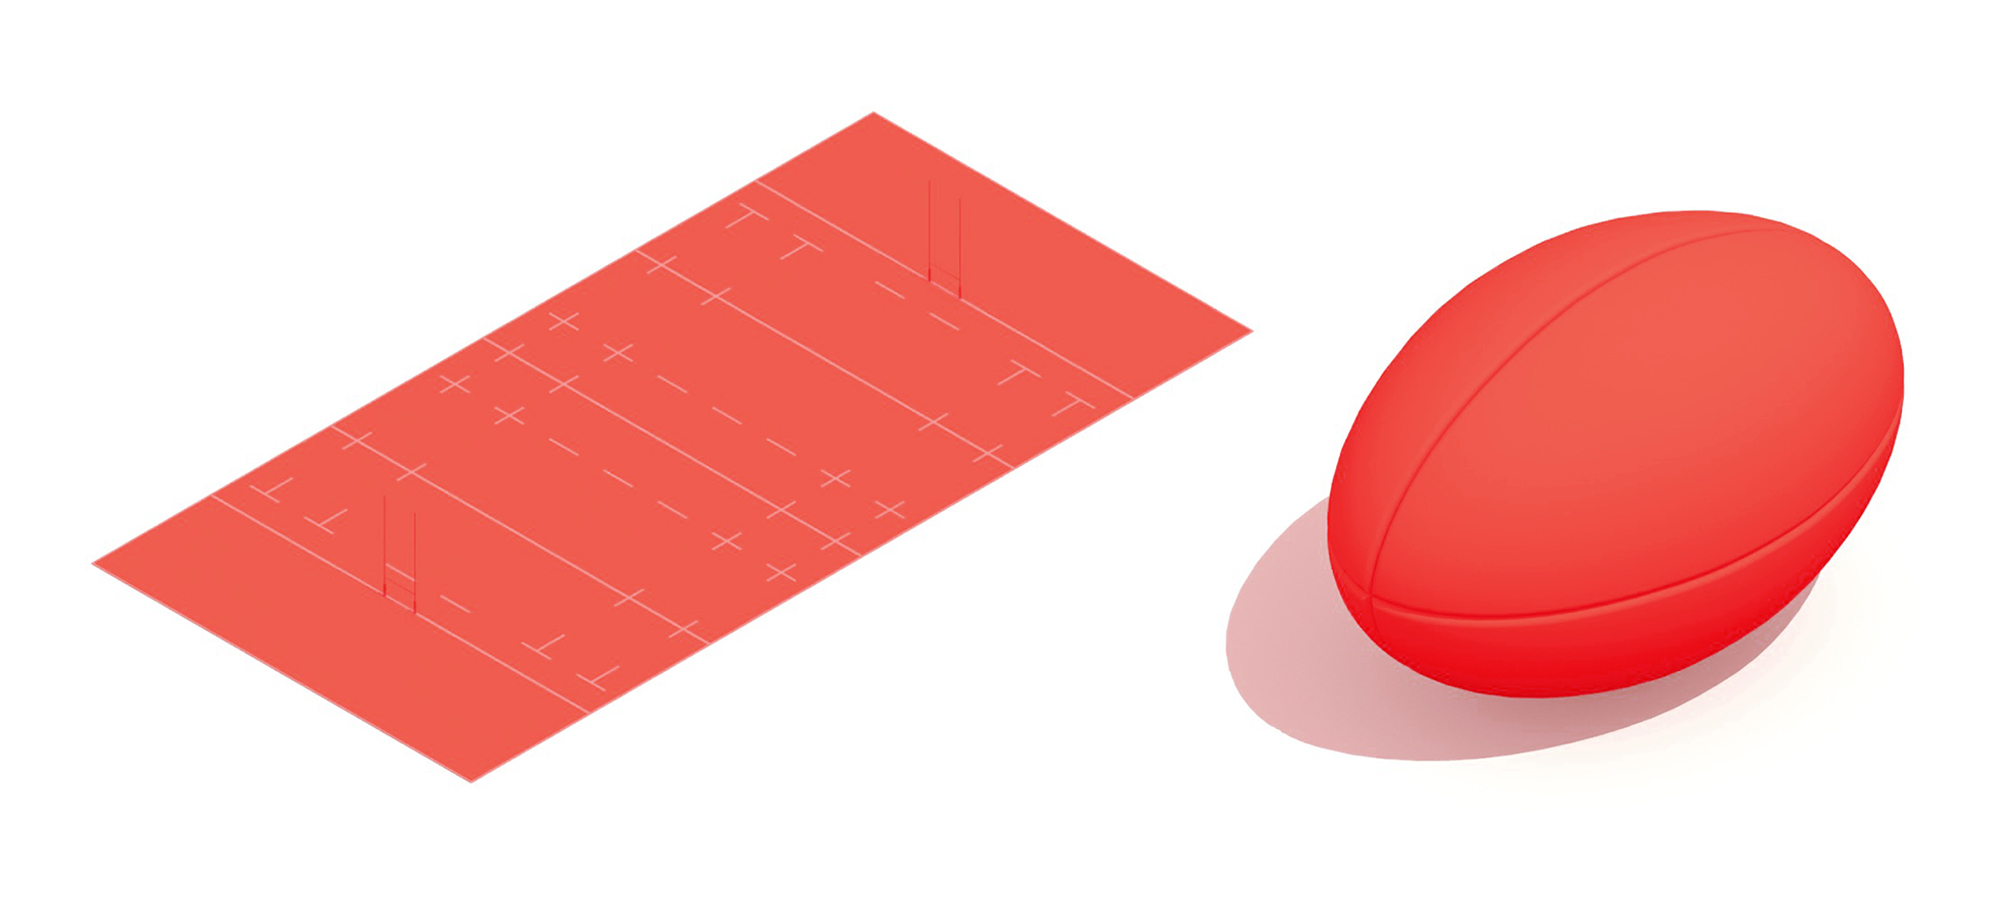 Pair of 3D models of rugby items including a rugby pitch and rugby ball